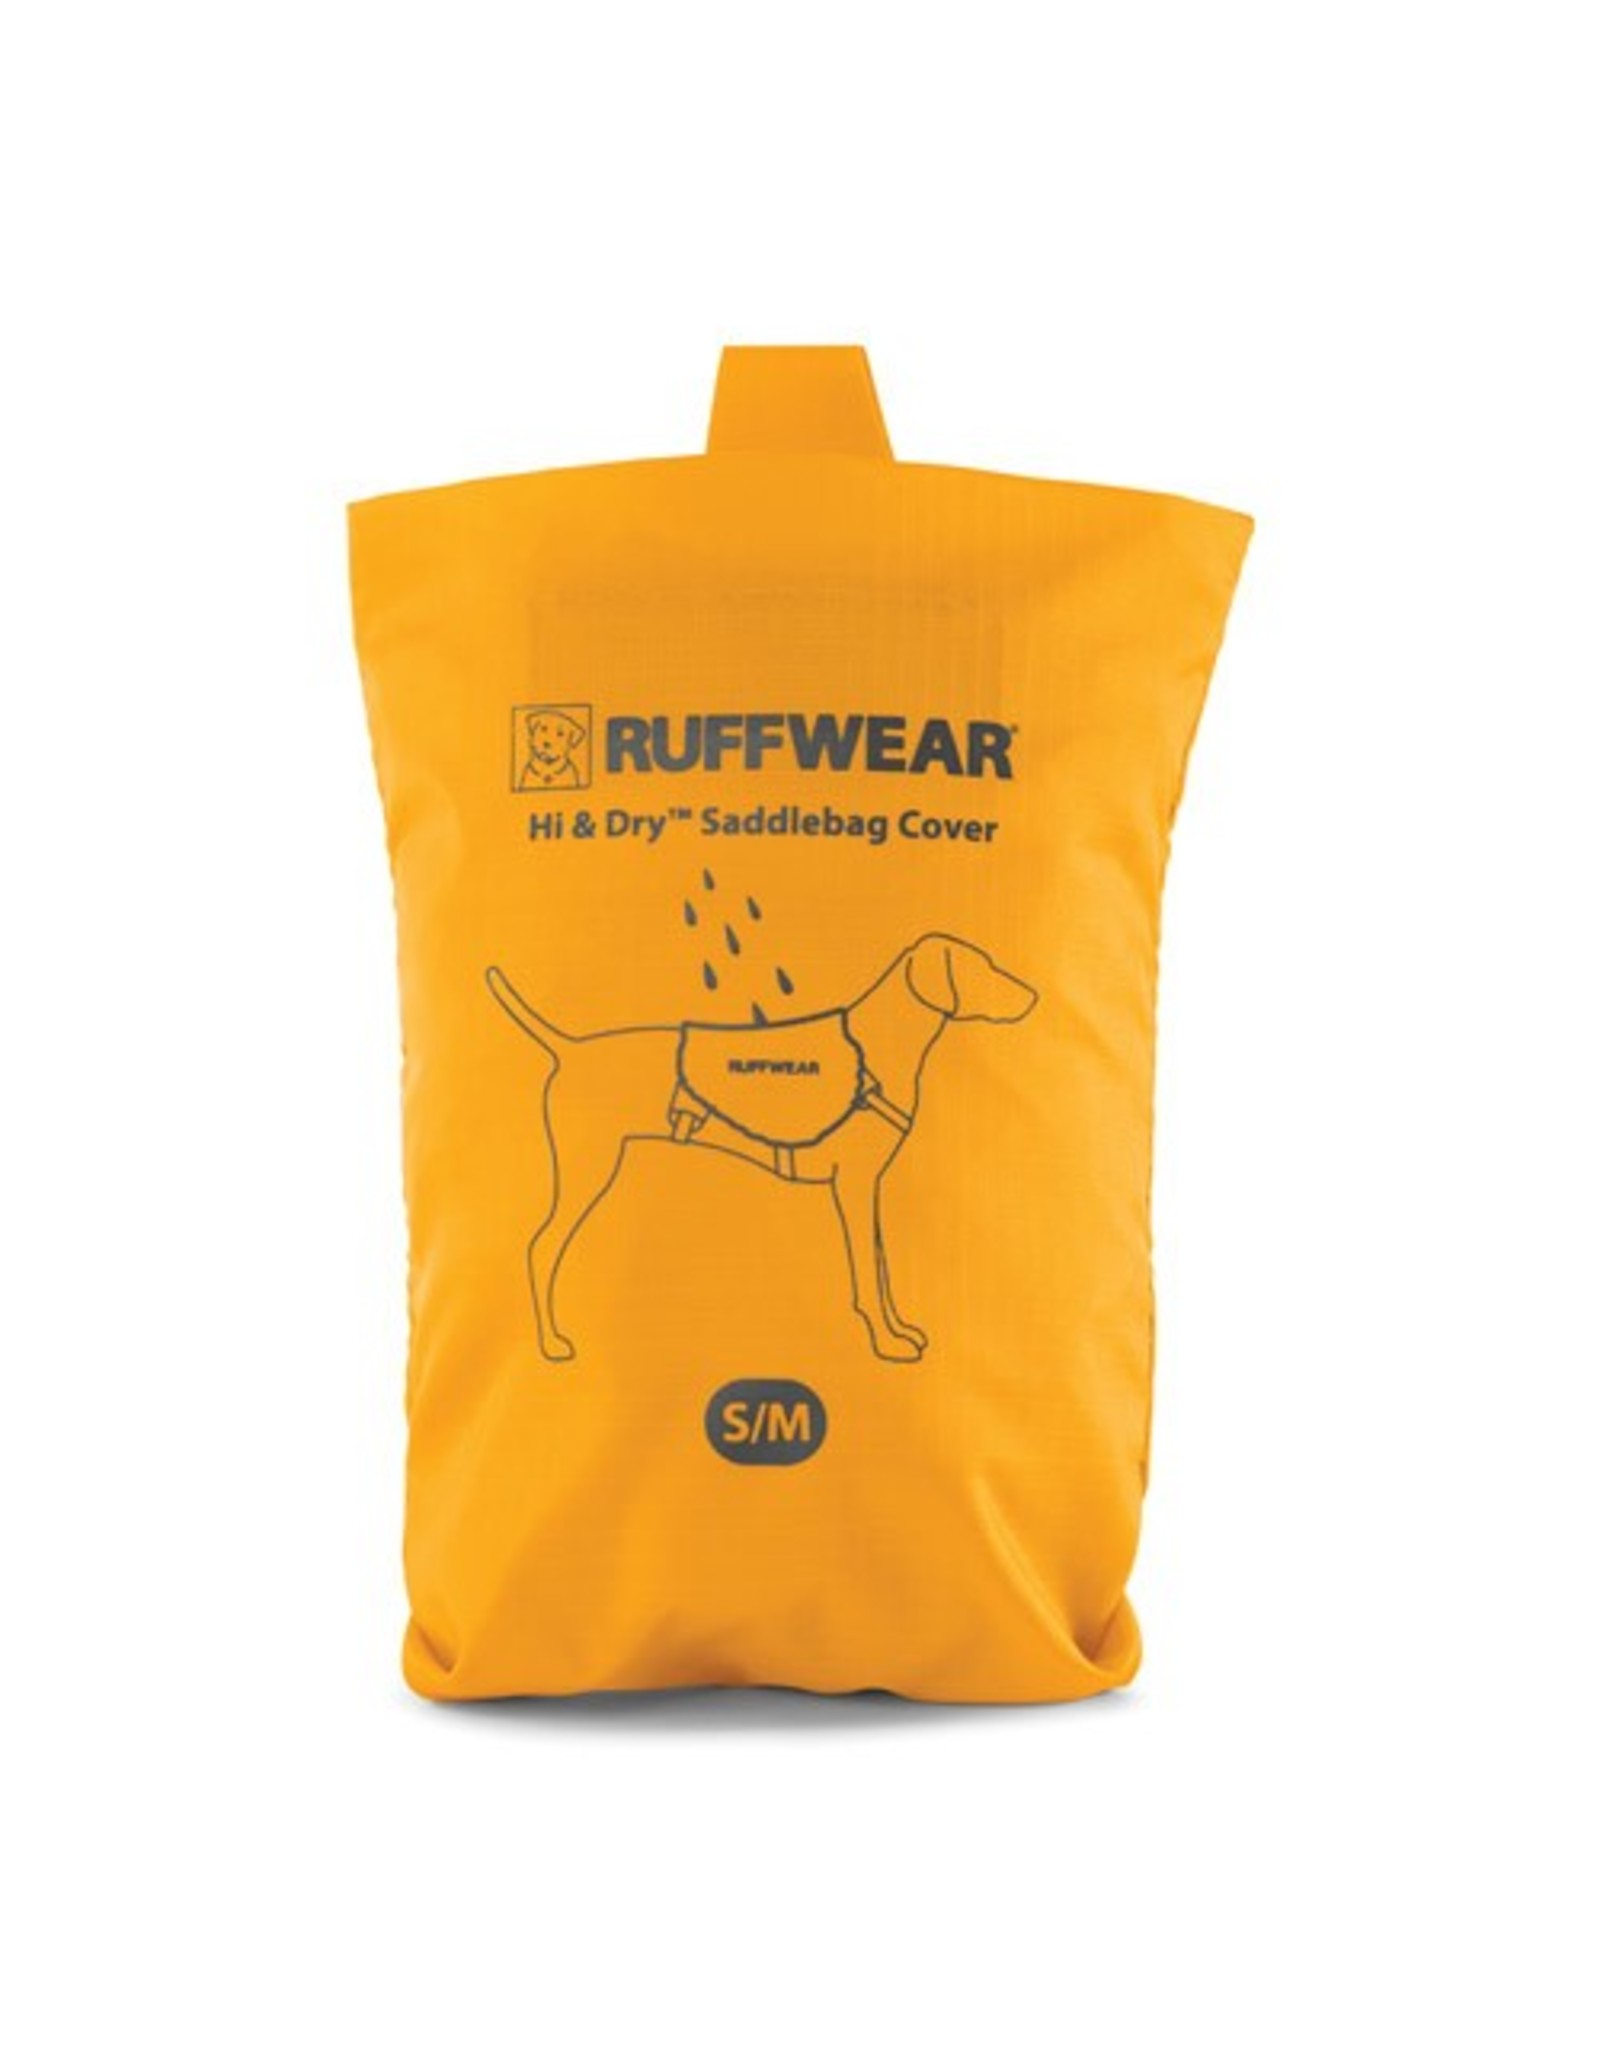 Ruffwear Hi & Dry™  Saddlebag Cover